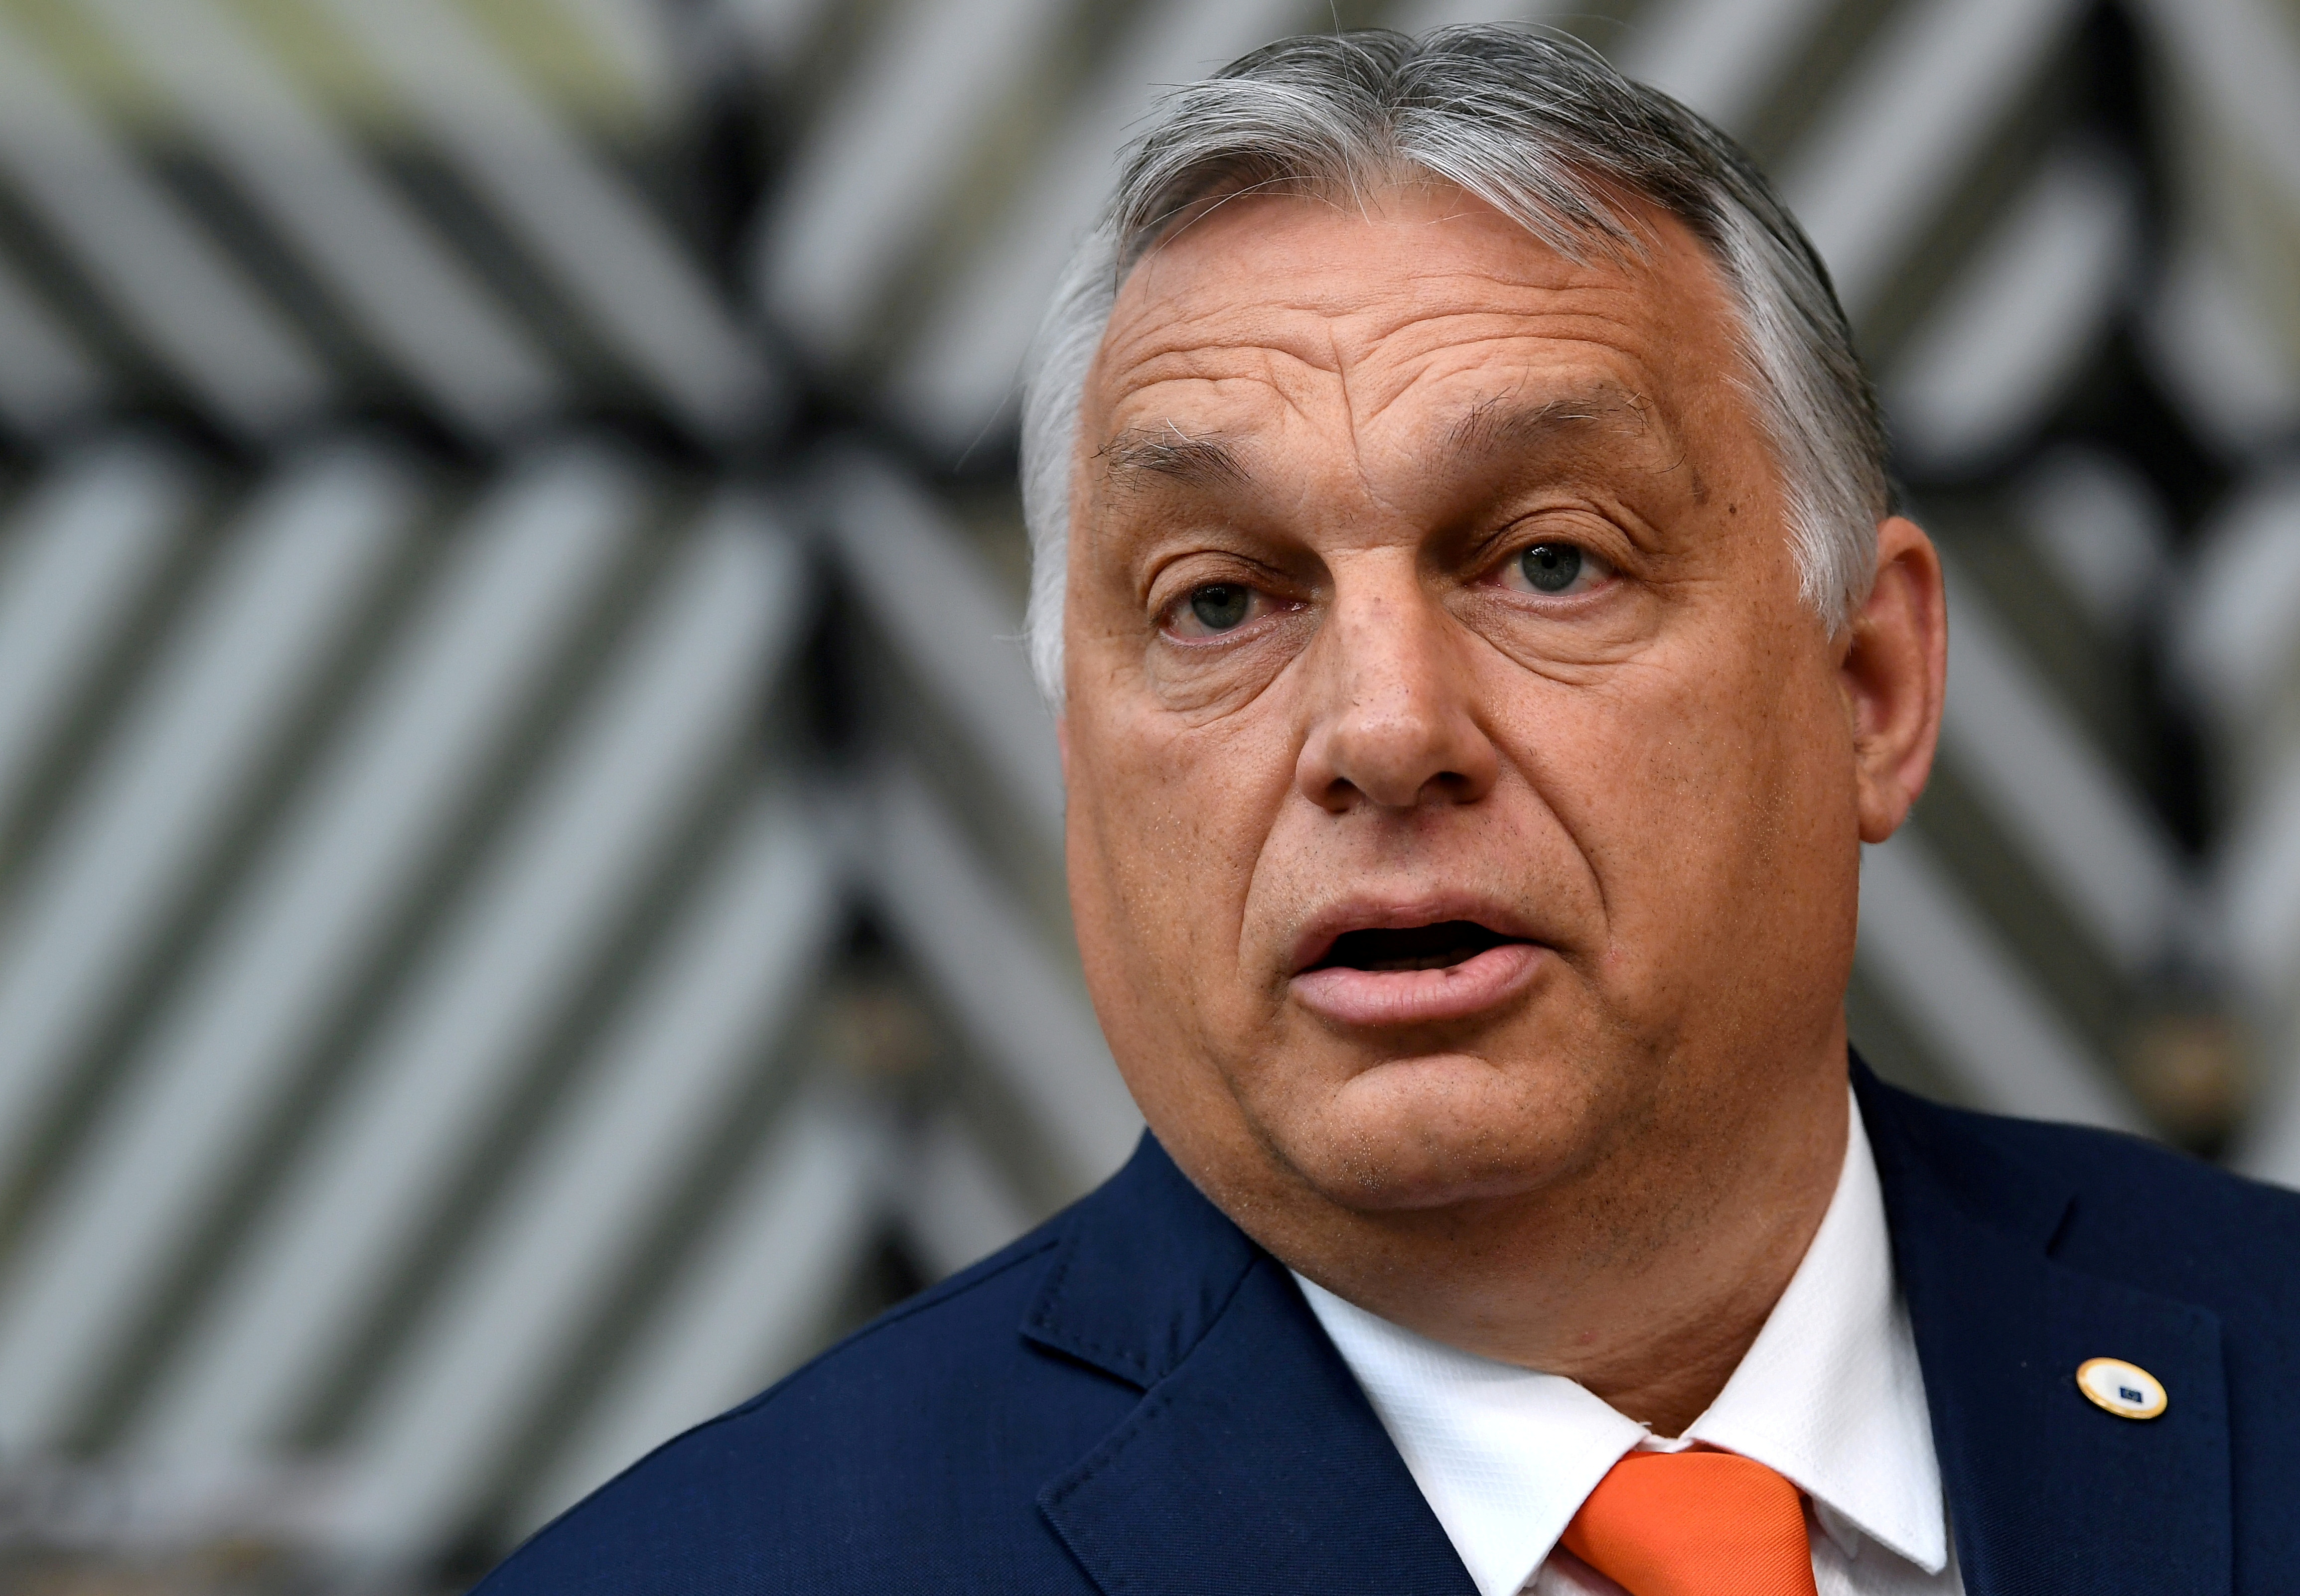 Hungary's Prime Minister Viktor Orban addresses the media as he arrives on the first day of the European Union summit at The European Council Building in Brussels, Belgium June 24, 2021. John Thys/Pool via REUTERS/File Photo